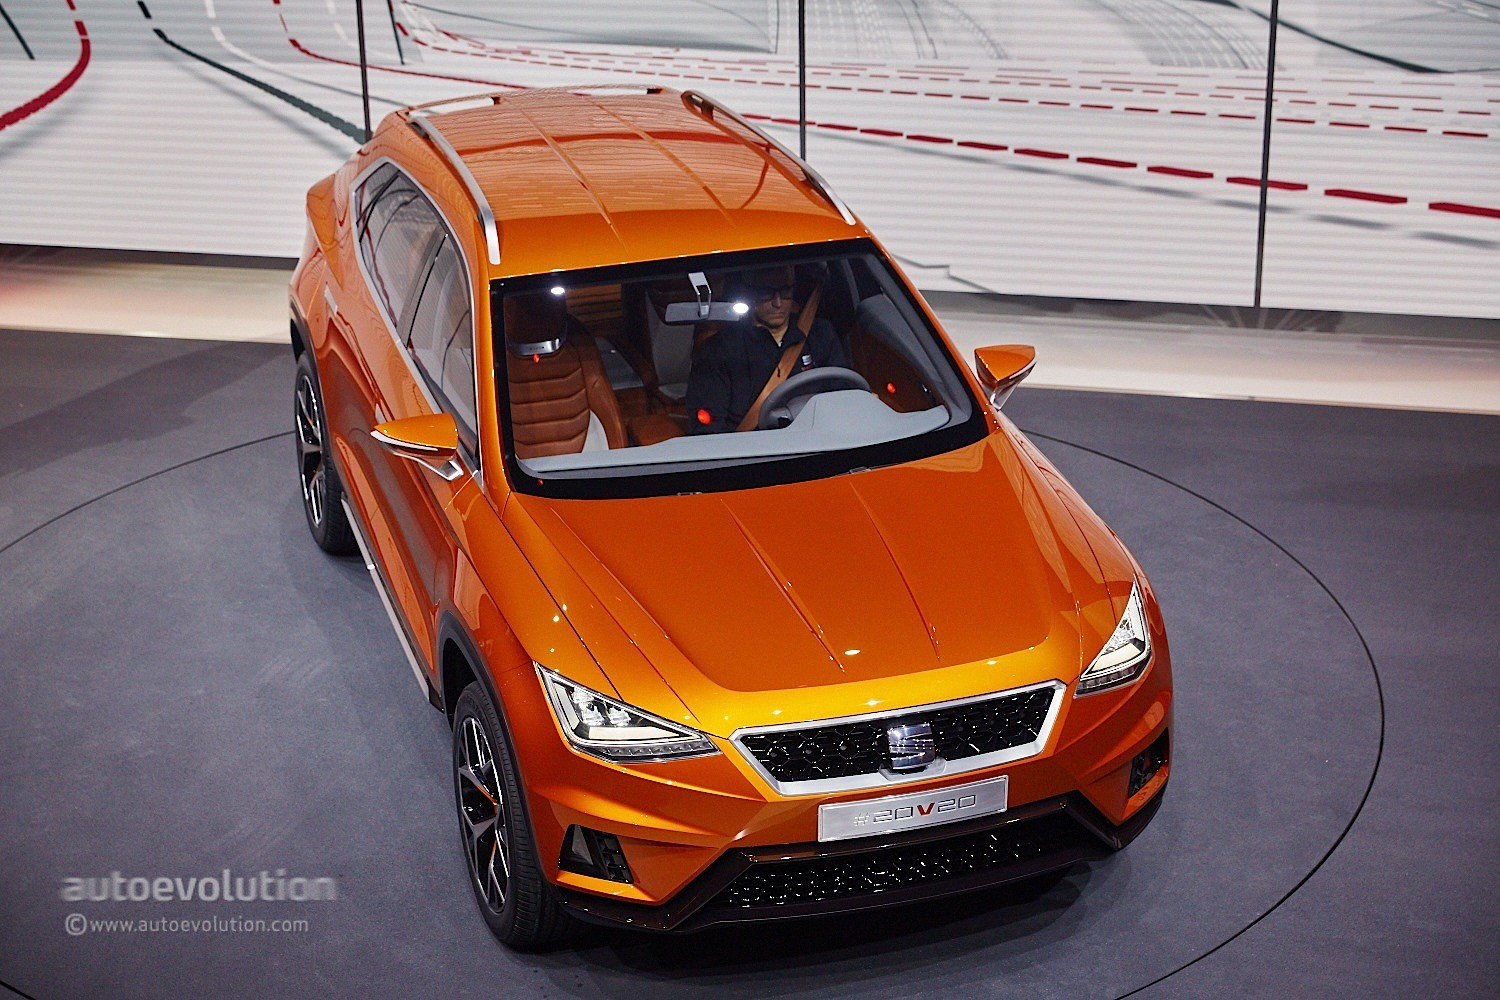 seat-prostyle-suv-will-be-the-first-of-4-new-models-coming-until-2017_5